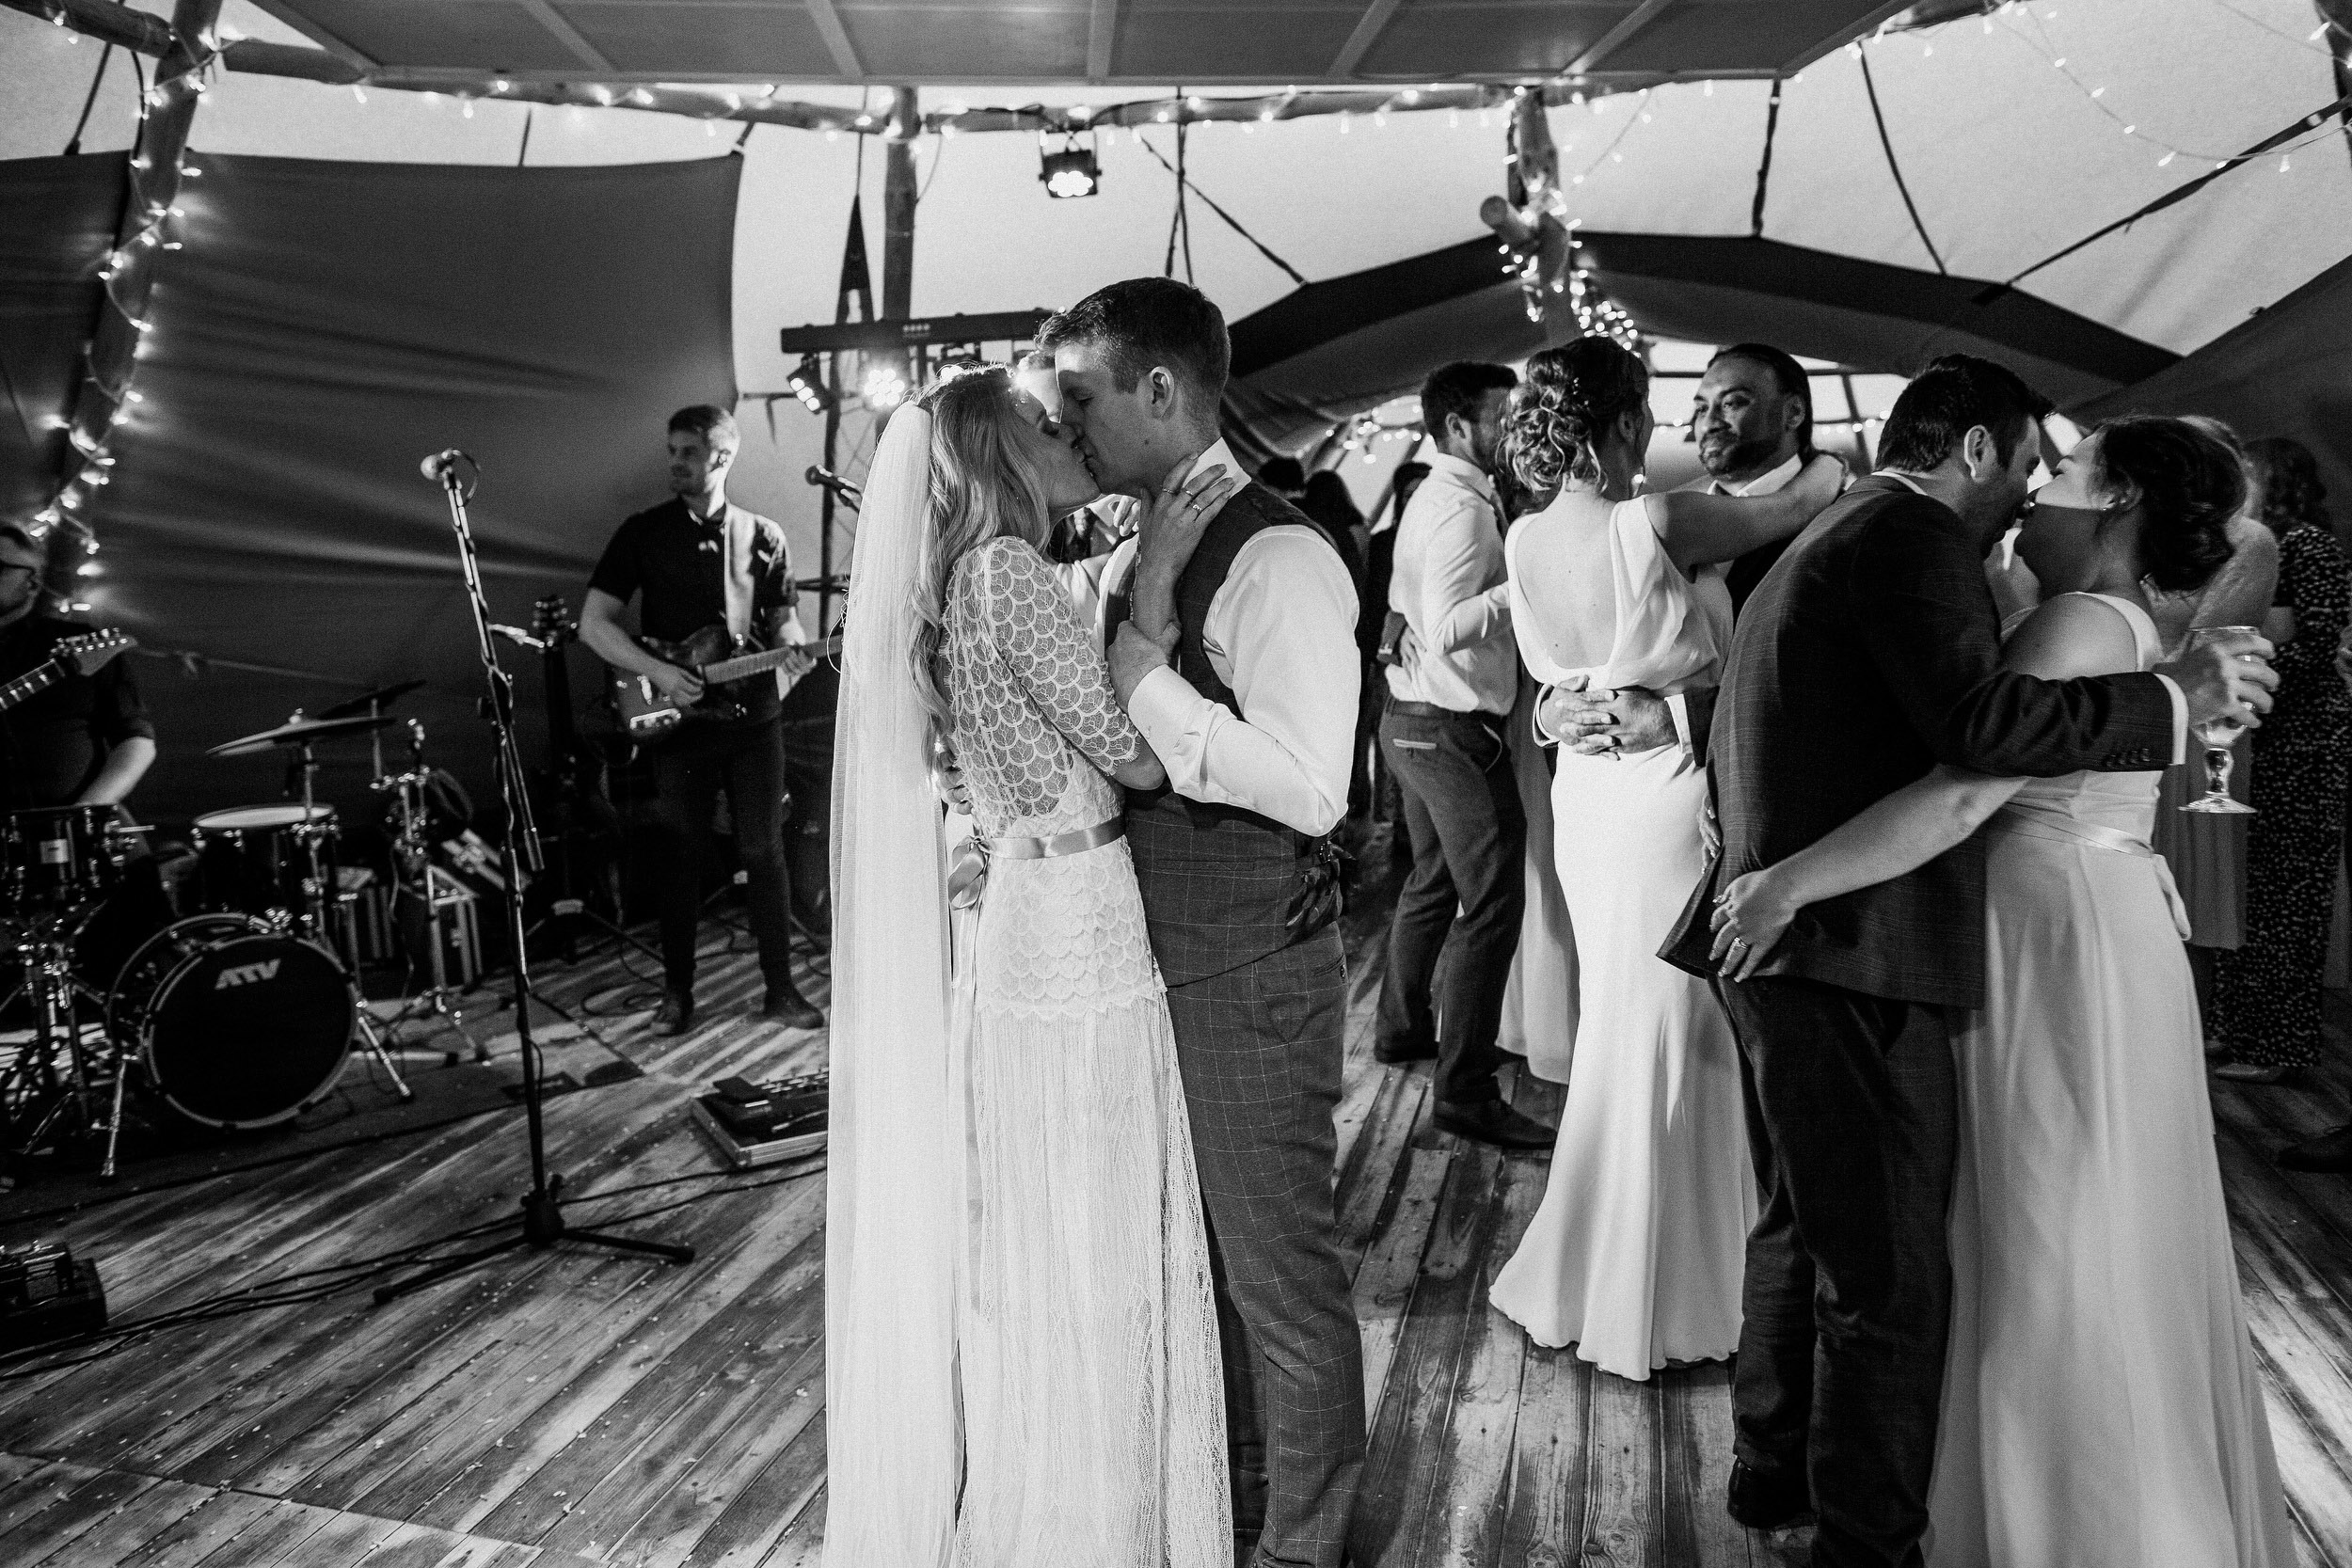 Gemma-Bohemian-Outdoor-Tipi-Wedding-Laid-Back-Relaxed-Family-Wedding-Kate-Beaumont-Astilbe-by-S6-Photography-Sheffield-57.jpg